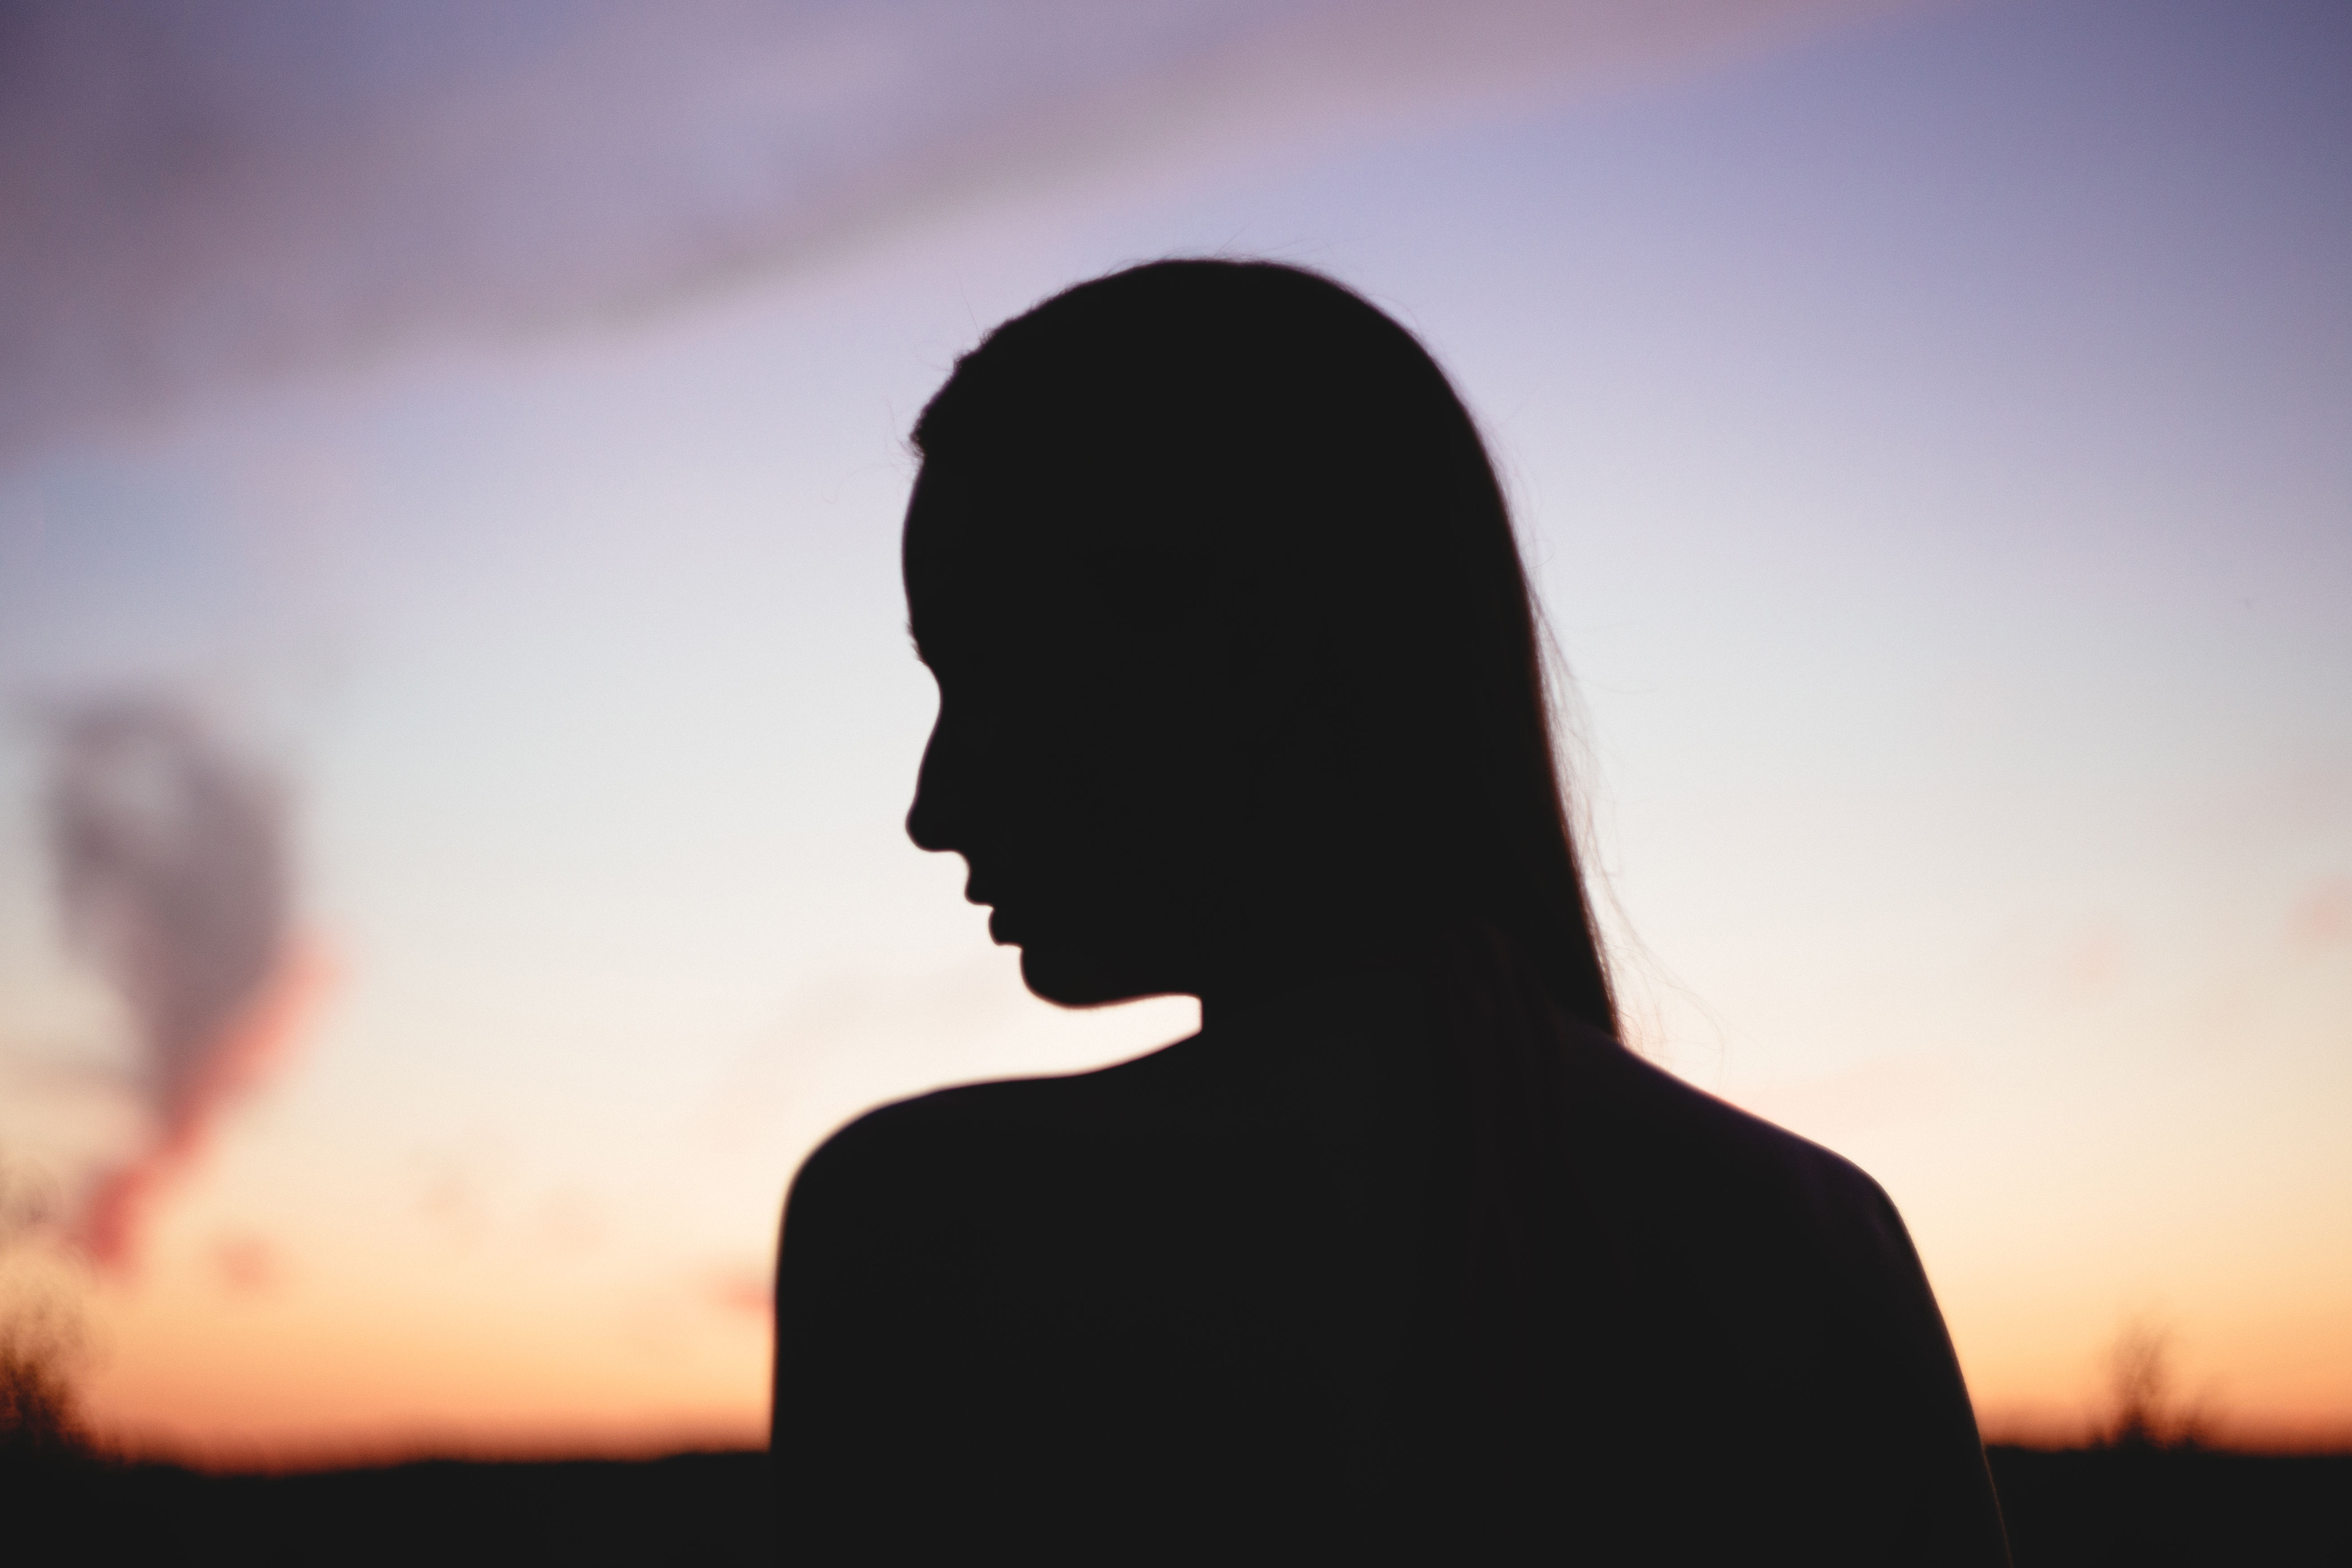 Why I Chose to Stay After My Husband Was Unfaithful www.herviewfromhome.com